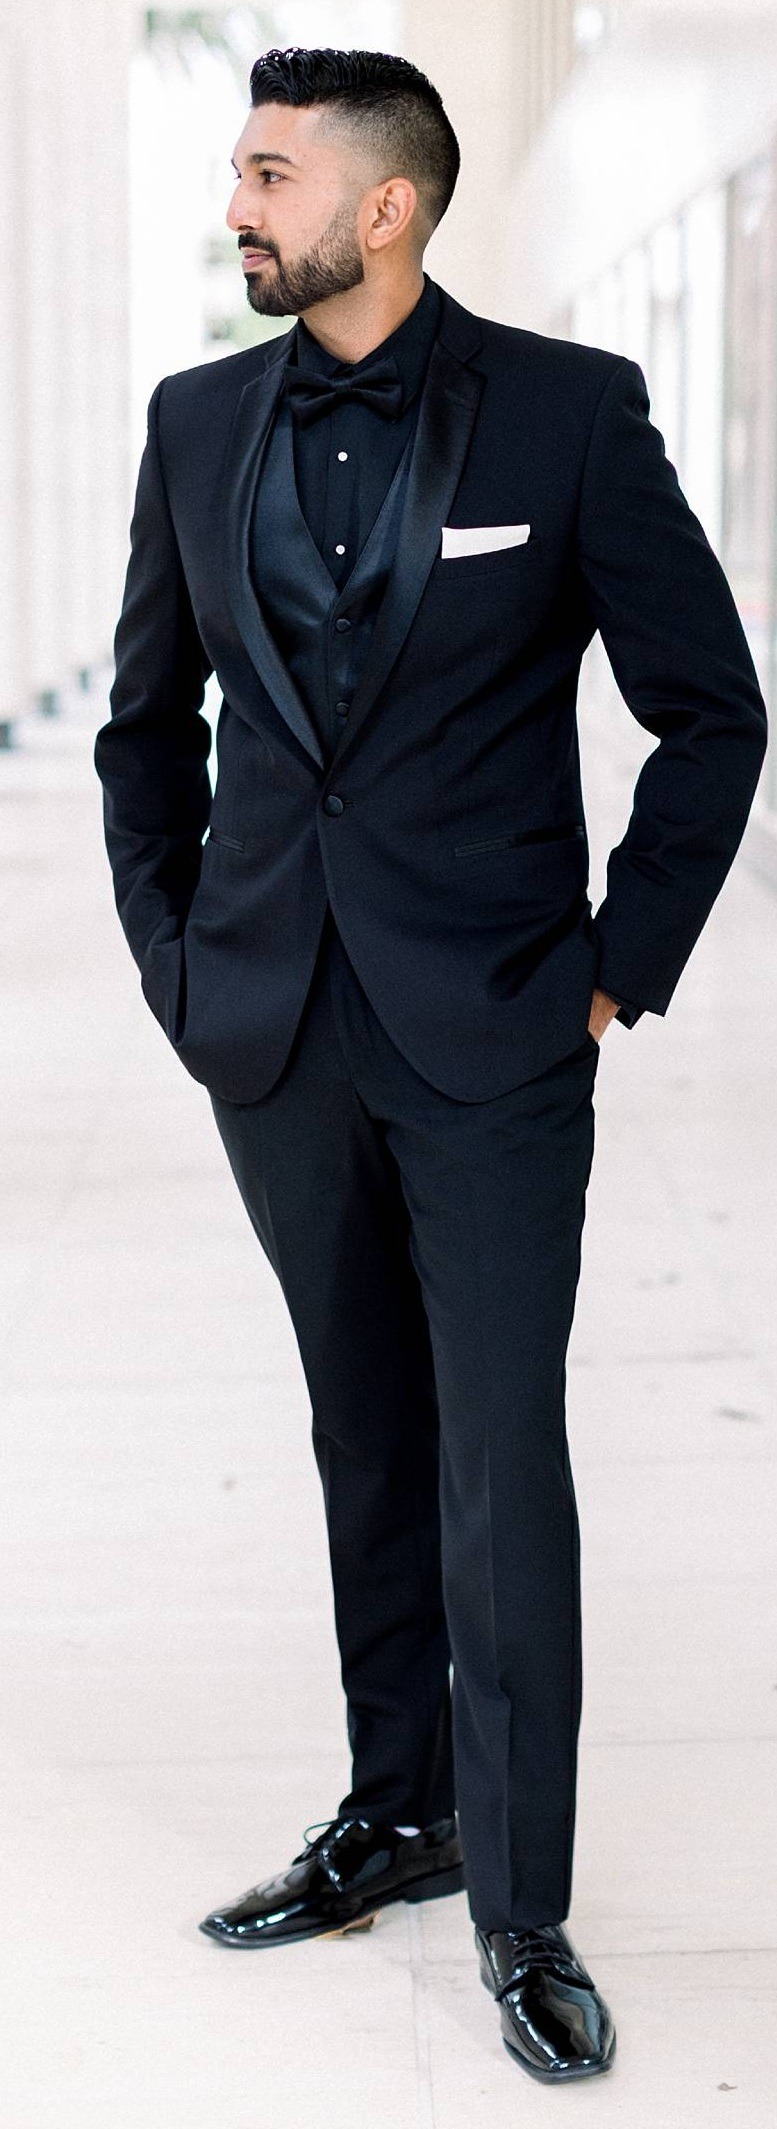 Tuxedo Suit Ideas for Men